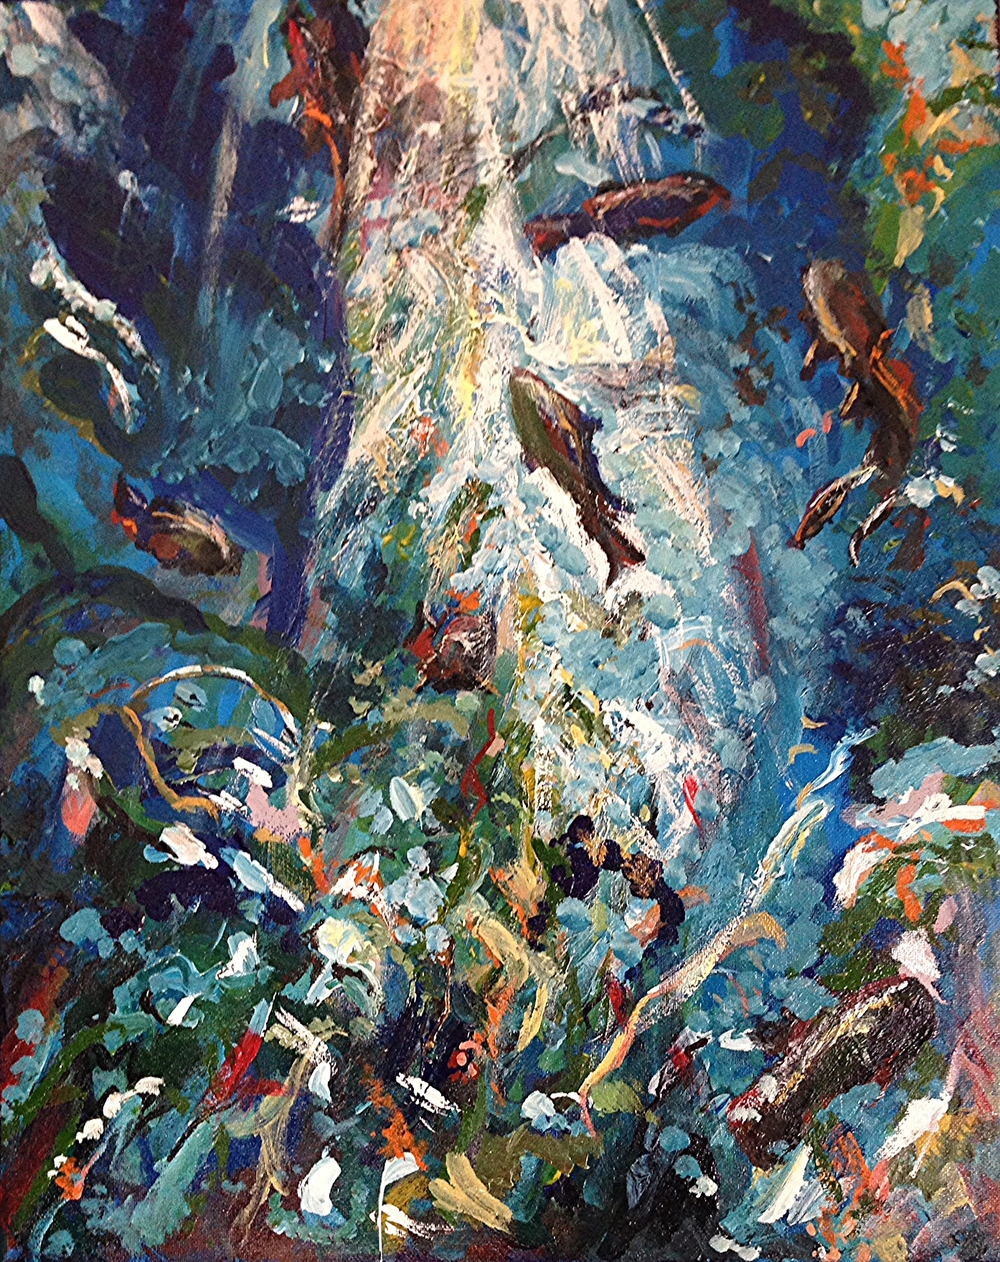 Toronto Aquarium.  Acrylic on Canvass.  Sold.